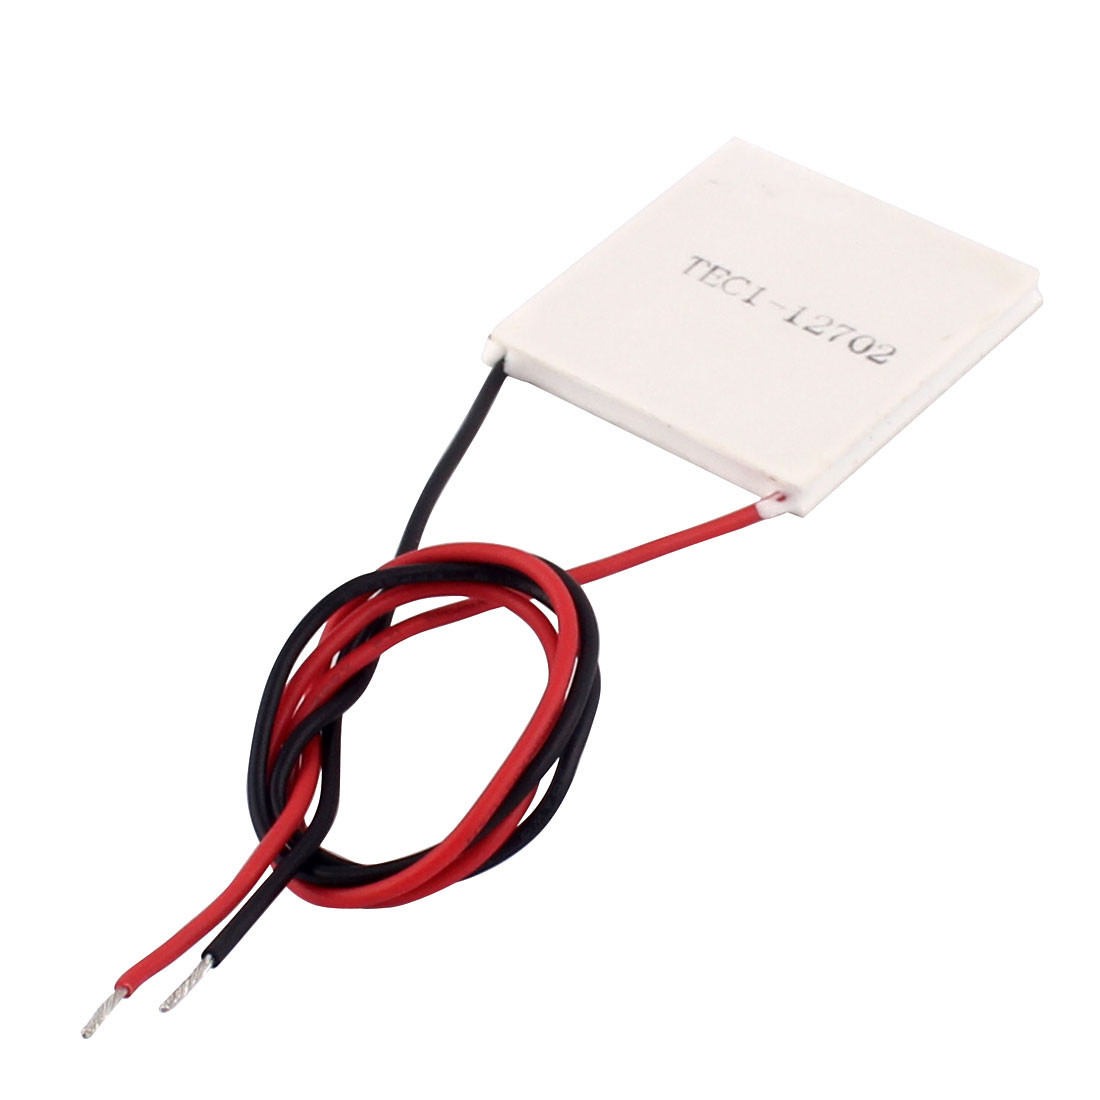 TEC1-12702 2A 12V 23W 40x40x4mm Thermoelectric Cooler Peltier Plate Module